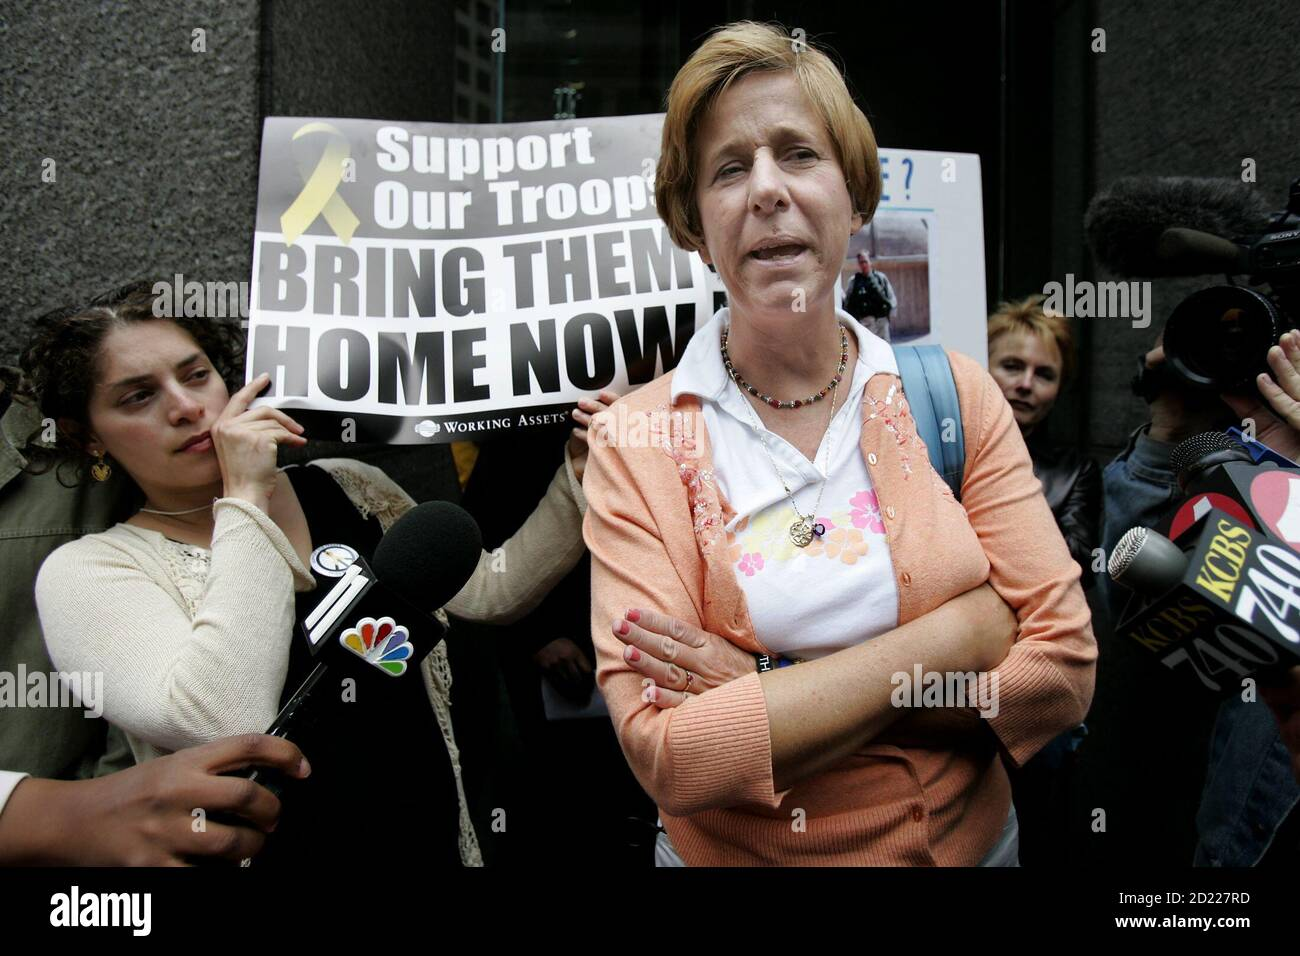 Iraq war protester Cindy Sheehan (R) speaks to the media outside the office of Senator Dianne Feinstein in San Francisco, California, September 9, 2005. Sheehan, who says her focus now will be Congress, met with staff of Senator Feinstein to discuss the war in Iraq. REUTERS/Kimberly White  KW Stock Photo